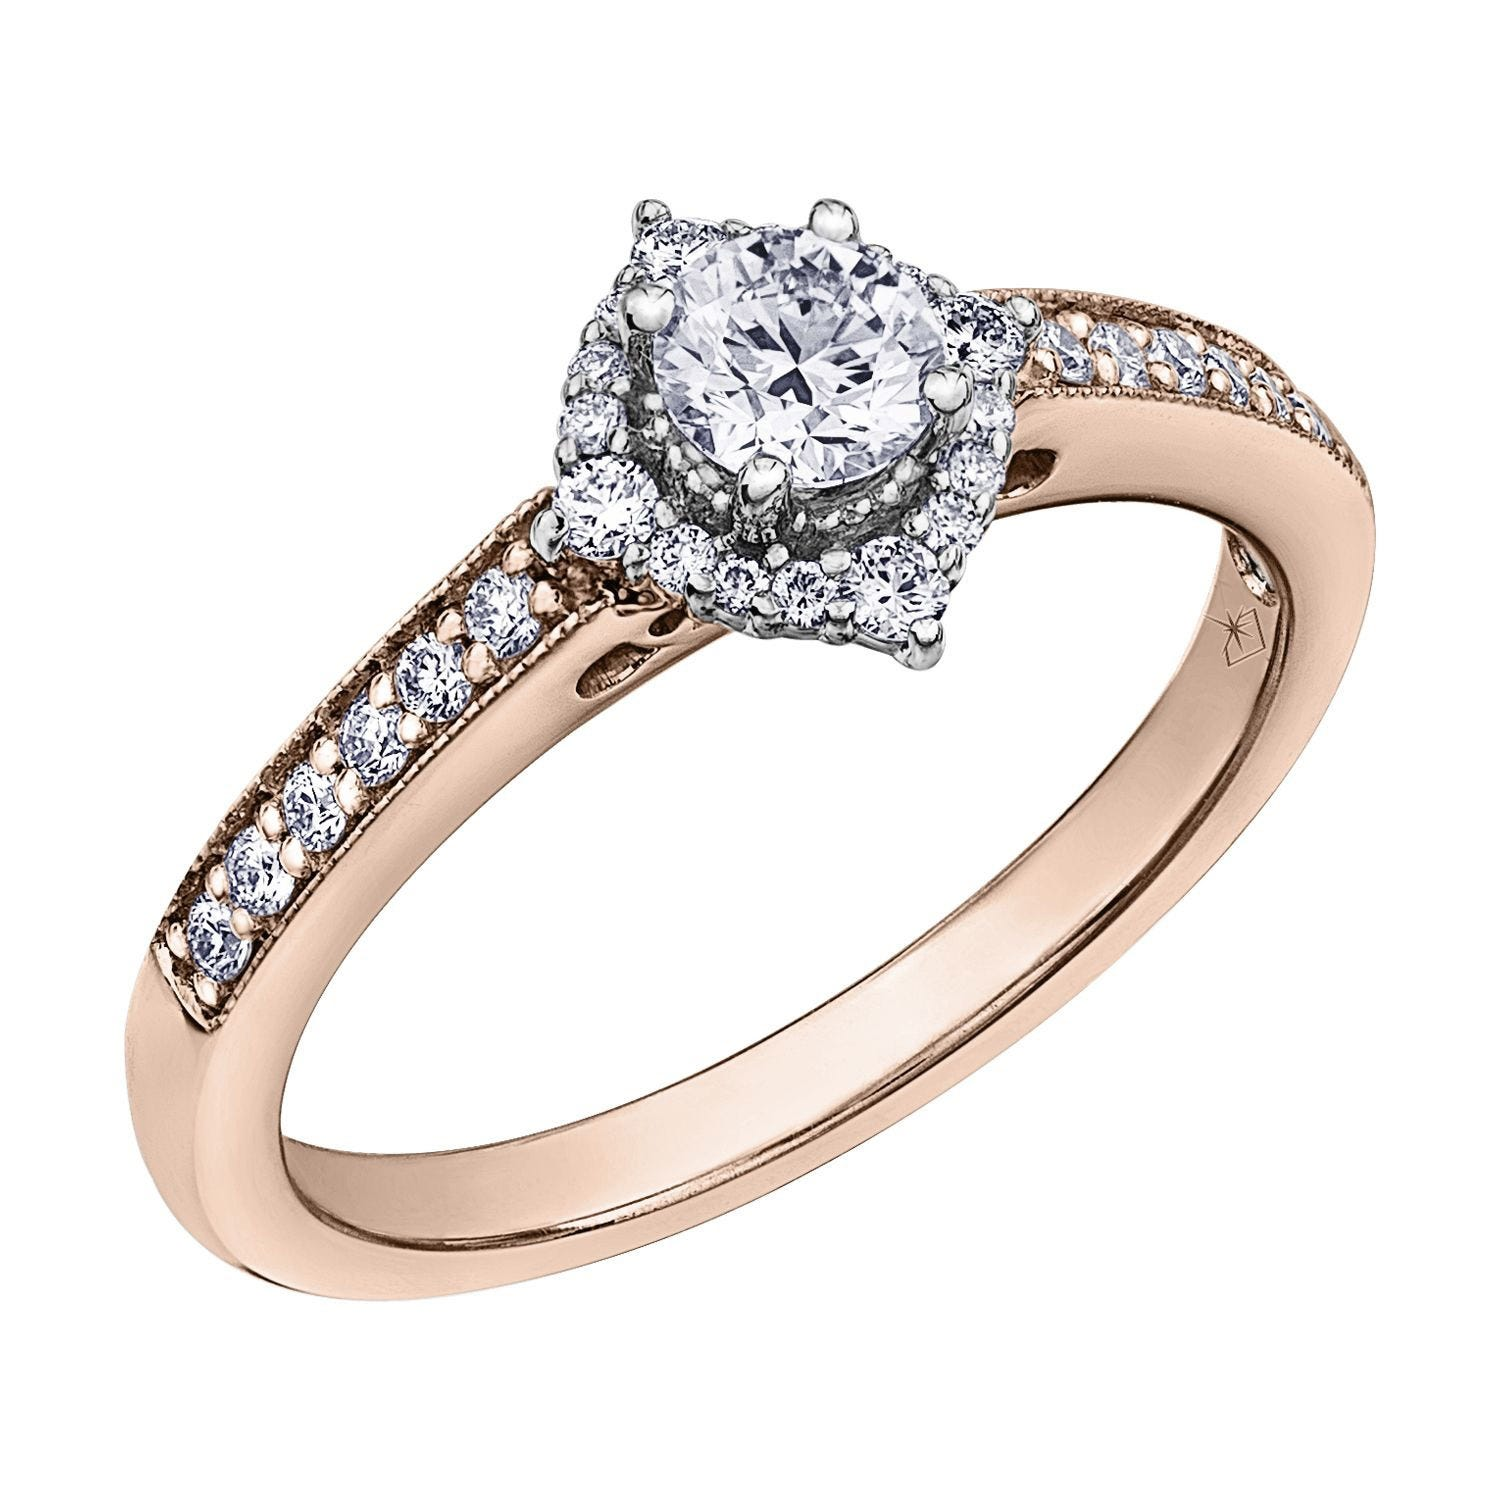 Northern Star Special Order Signature 0.50ct Diamond 18ct Rose Gold Ring